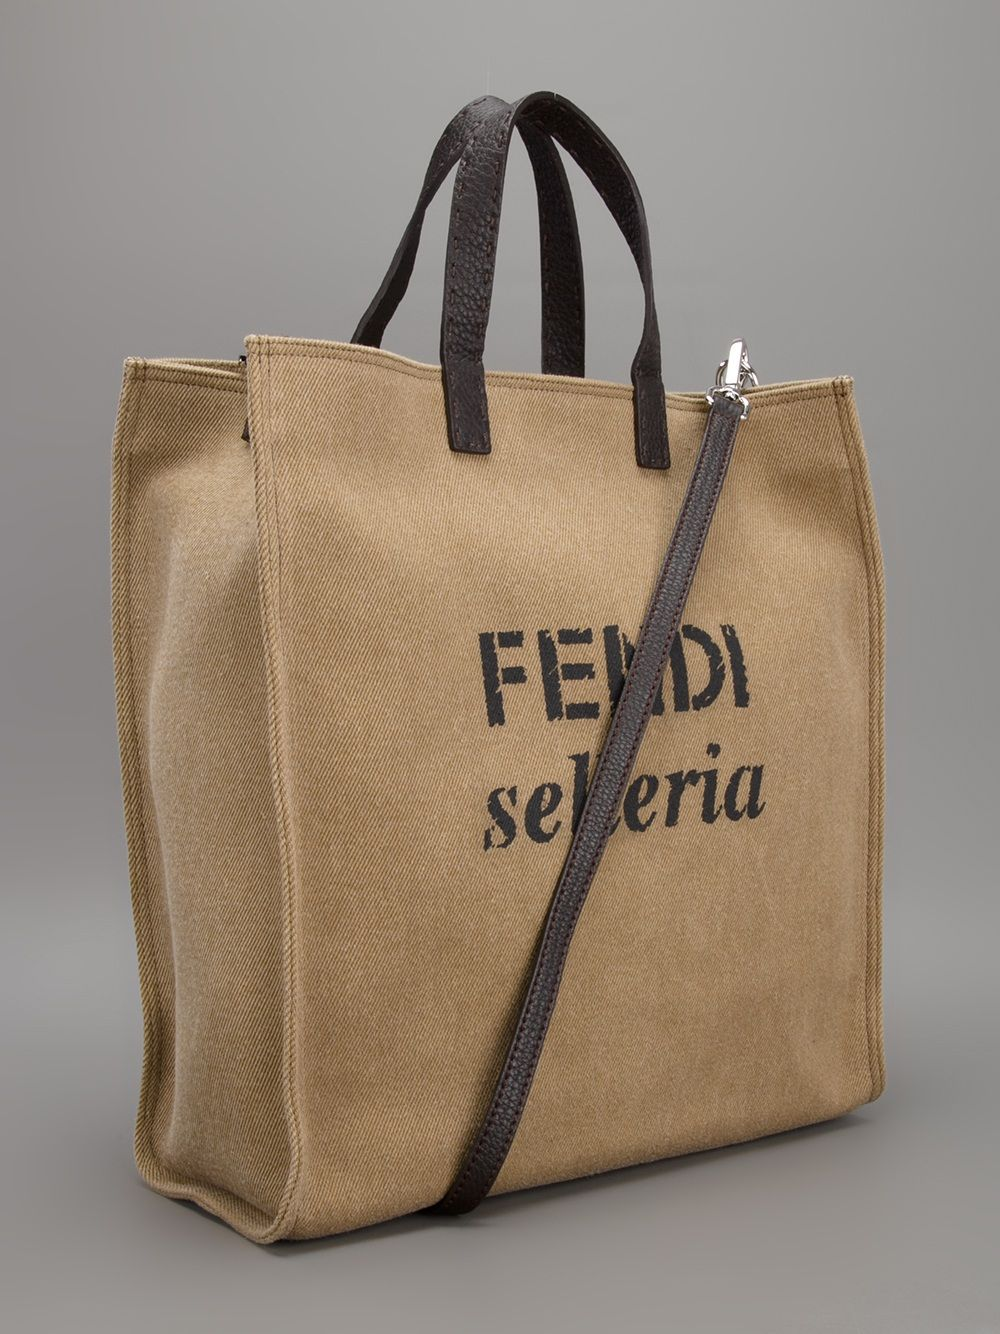 Fendi 'Selleria Shopping Tote' | leather goods | Bags ...